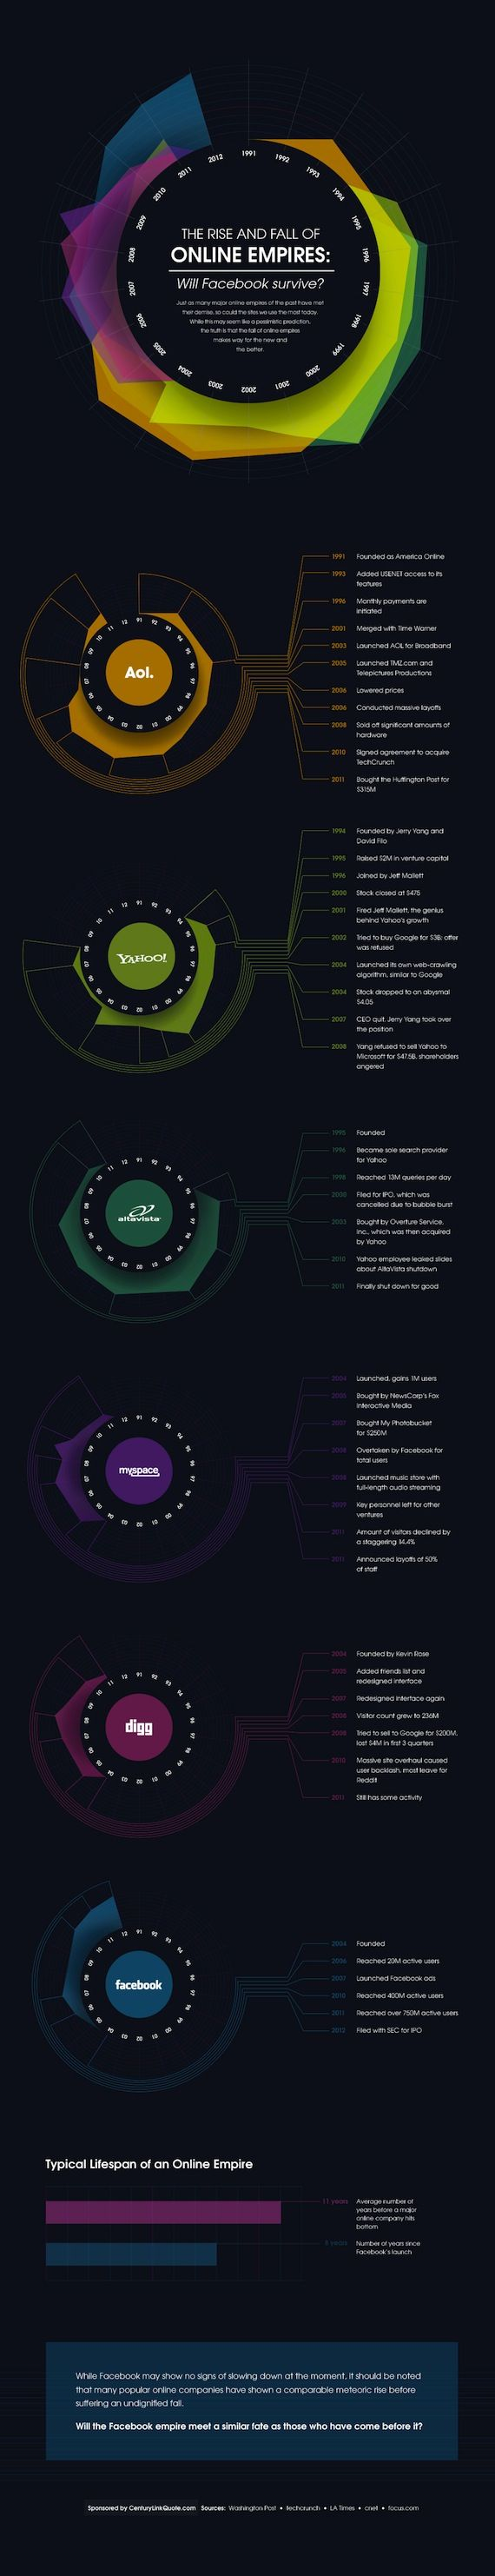 The Rise and Fall of Online Empires - Infographic